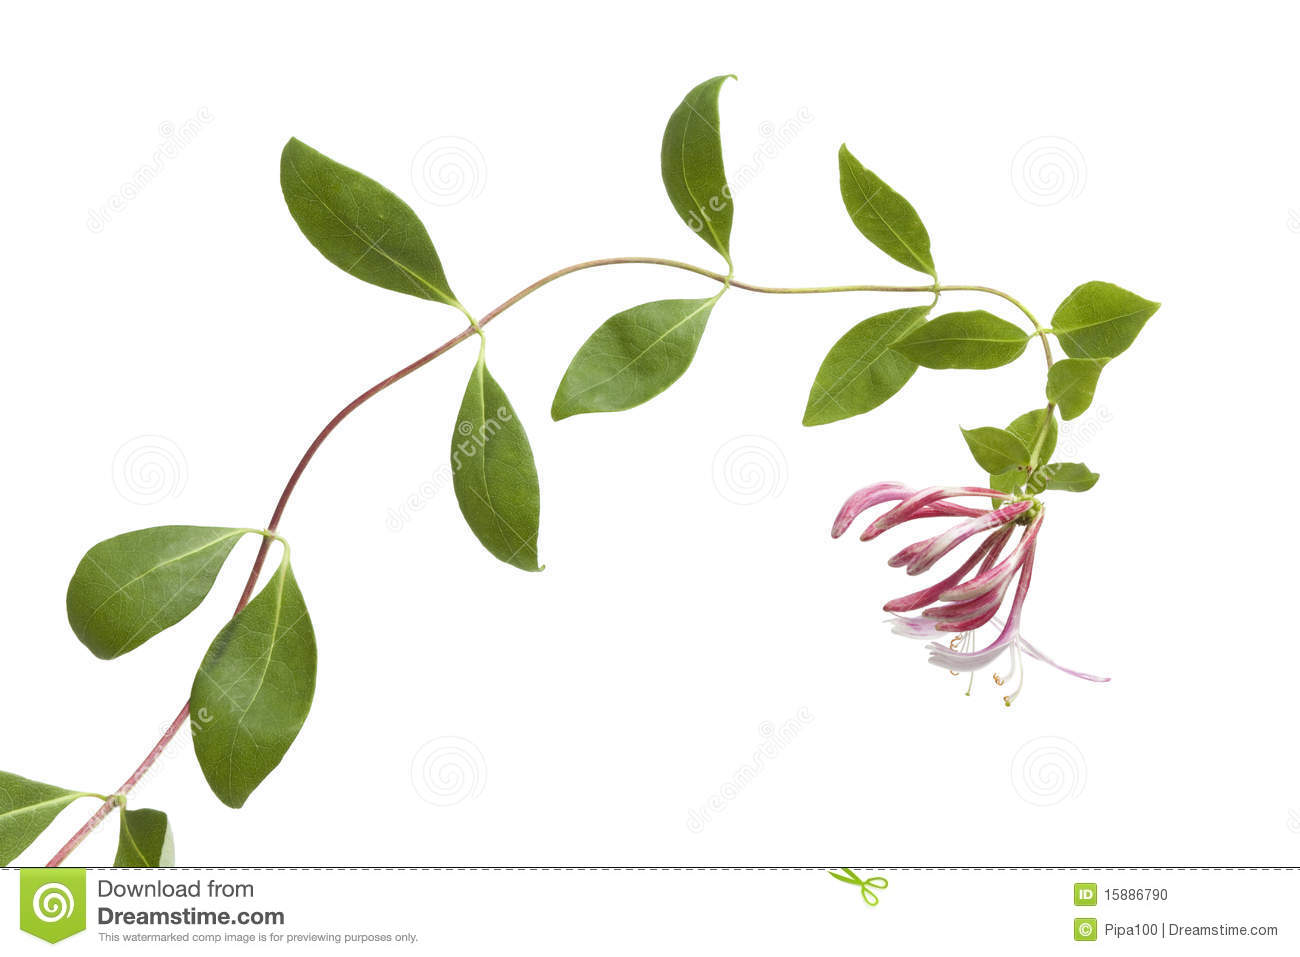 Honeysuckle Clipart Royalty Free Stock Images  Image